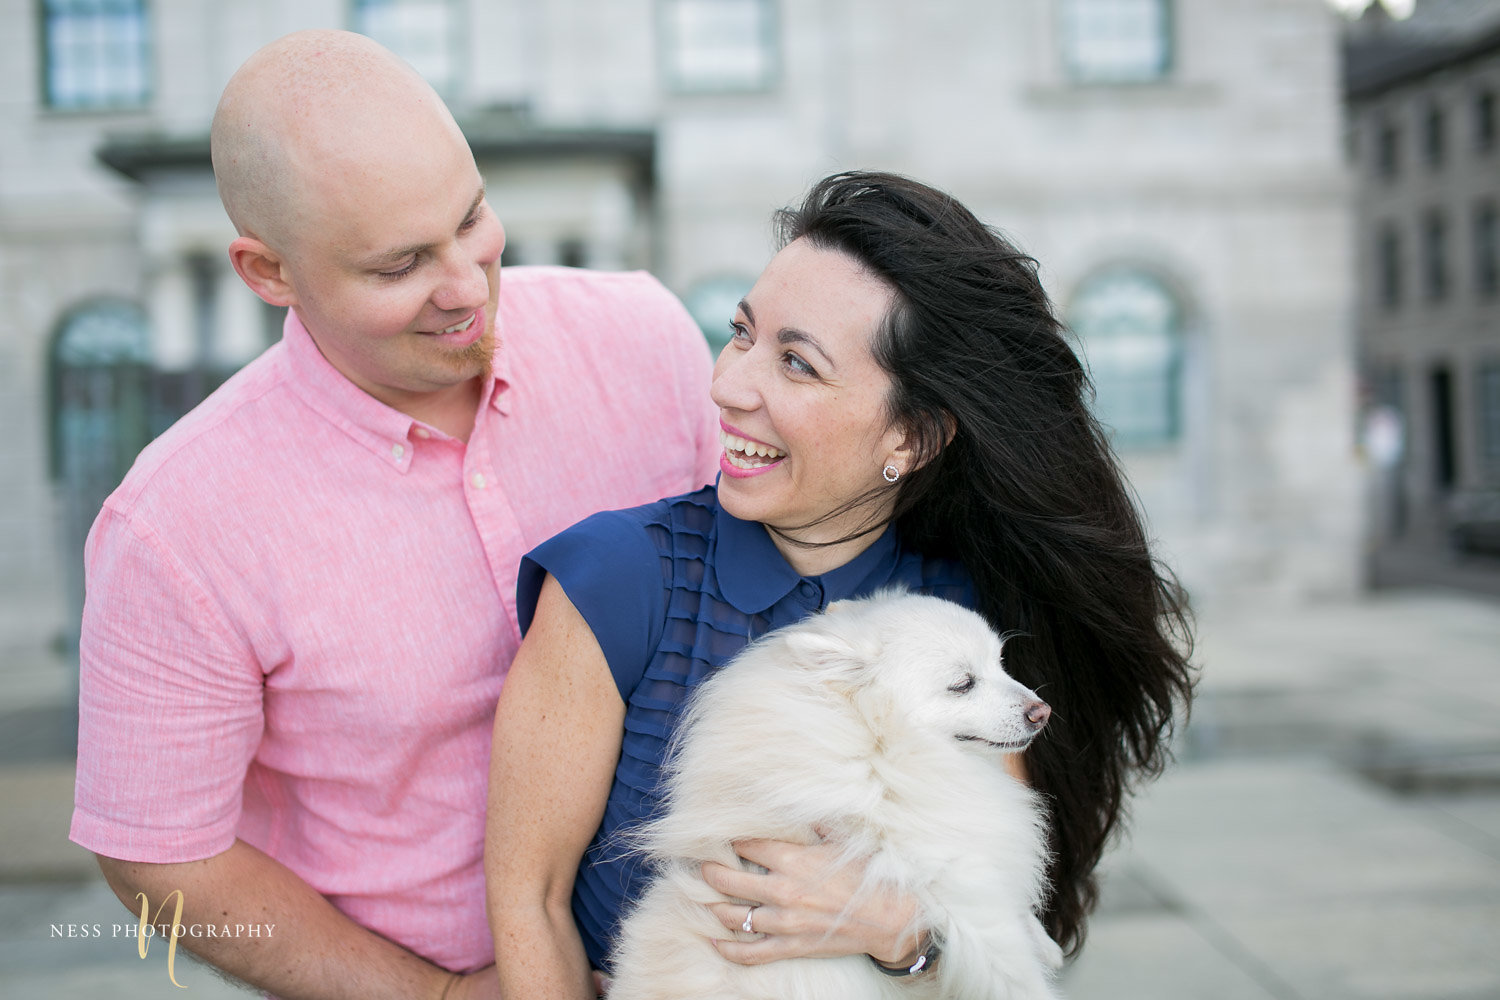 Adelina & Dan Engagement Photos Old Port Montreal with white dog By Ness Photography Wedding and Engagement Photographer 118.jpg